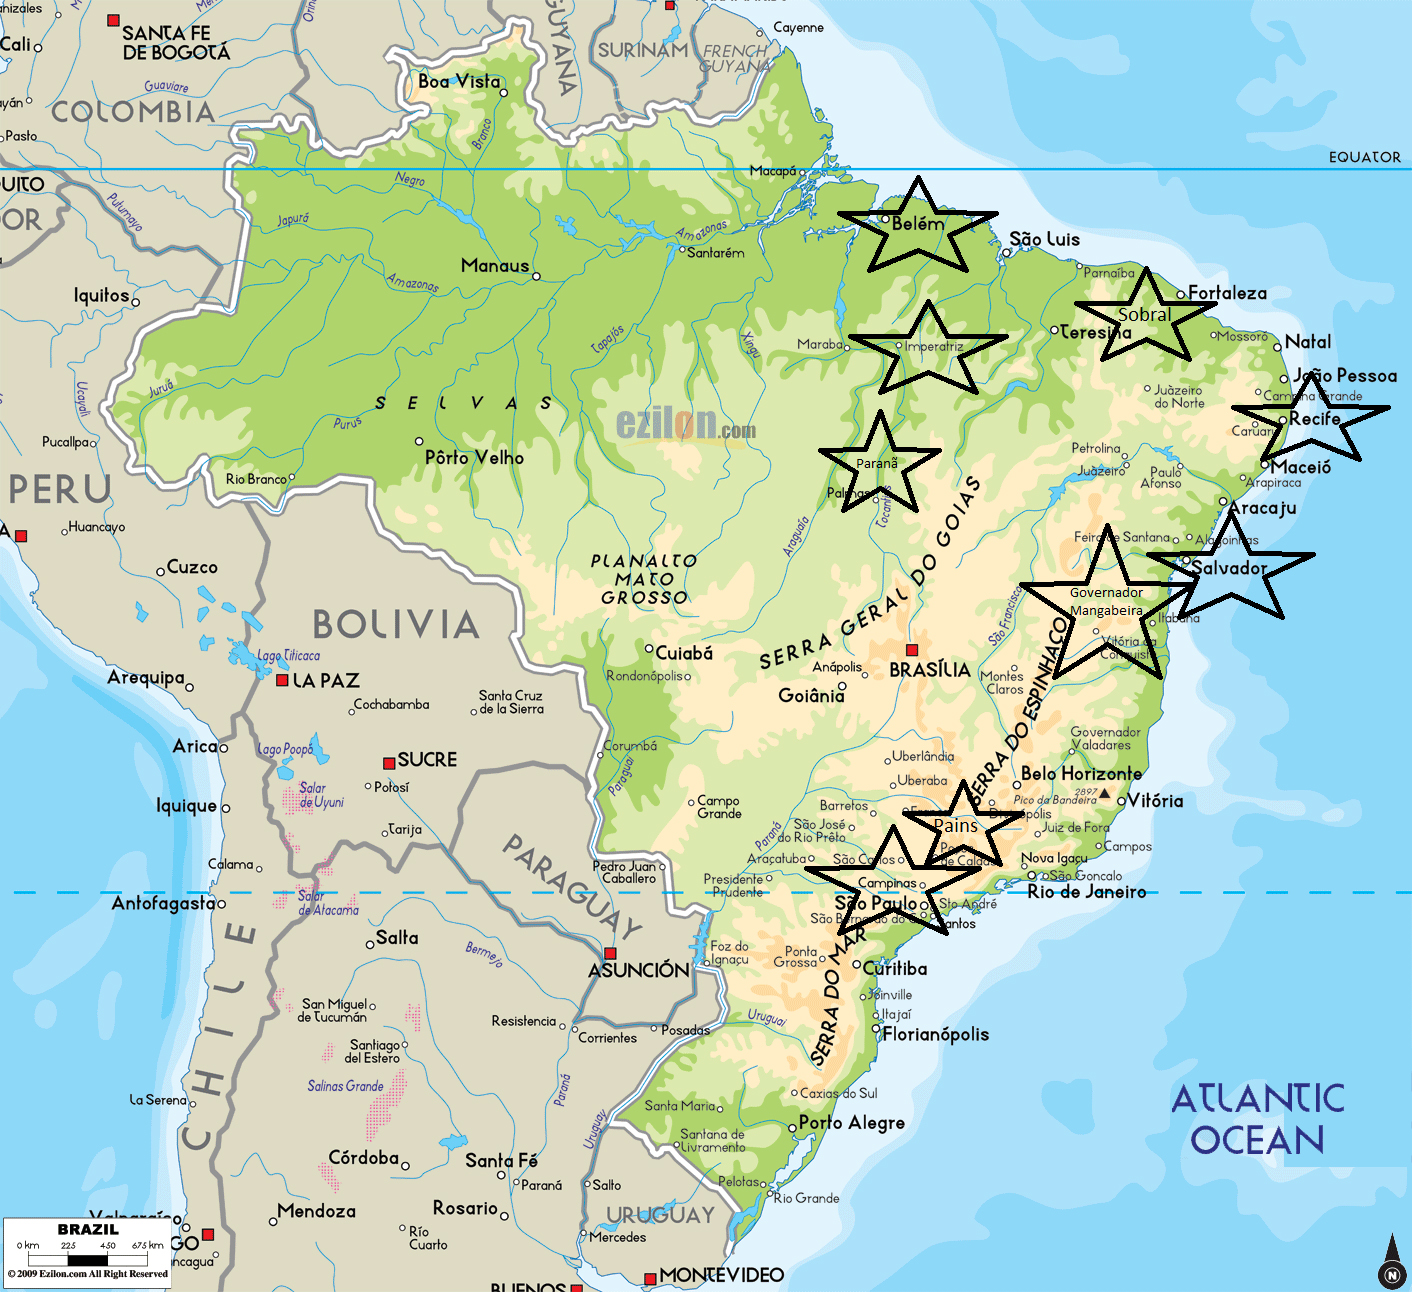 A map of Brazil with all the places we lived. Our son made this map because each place was life-changing to him.